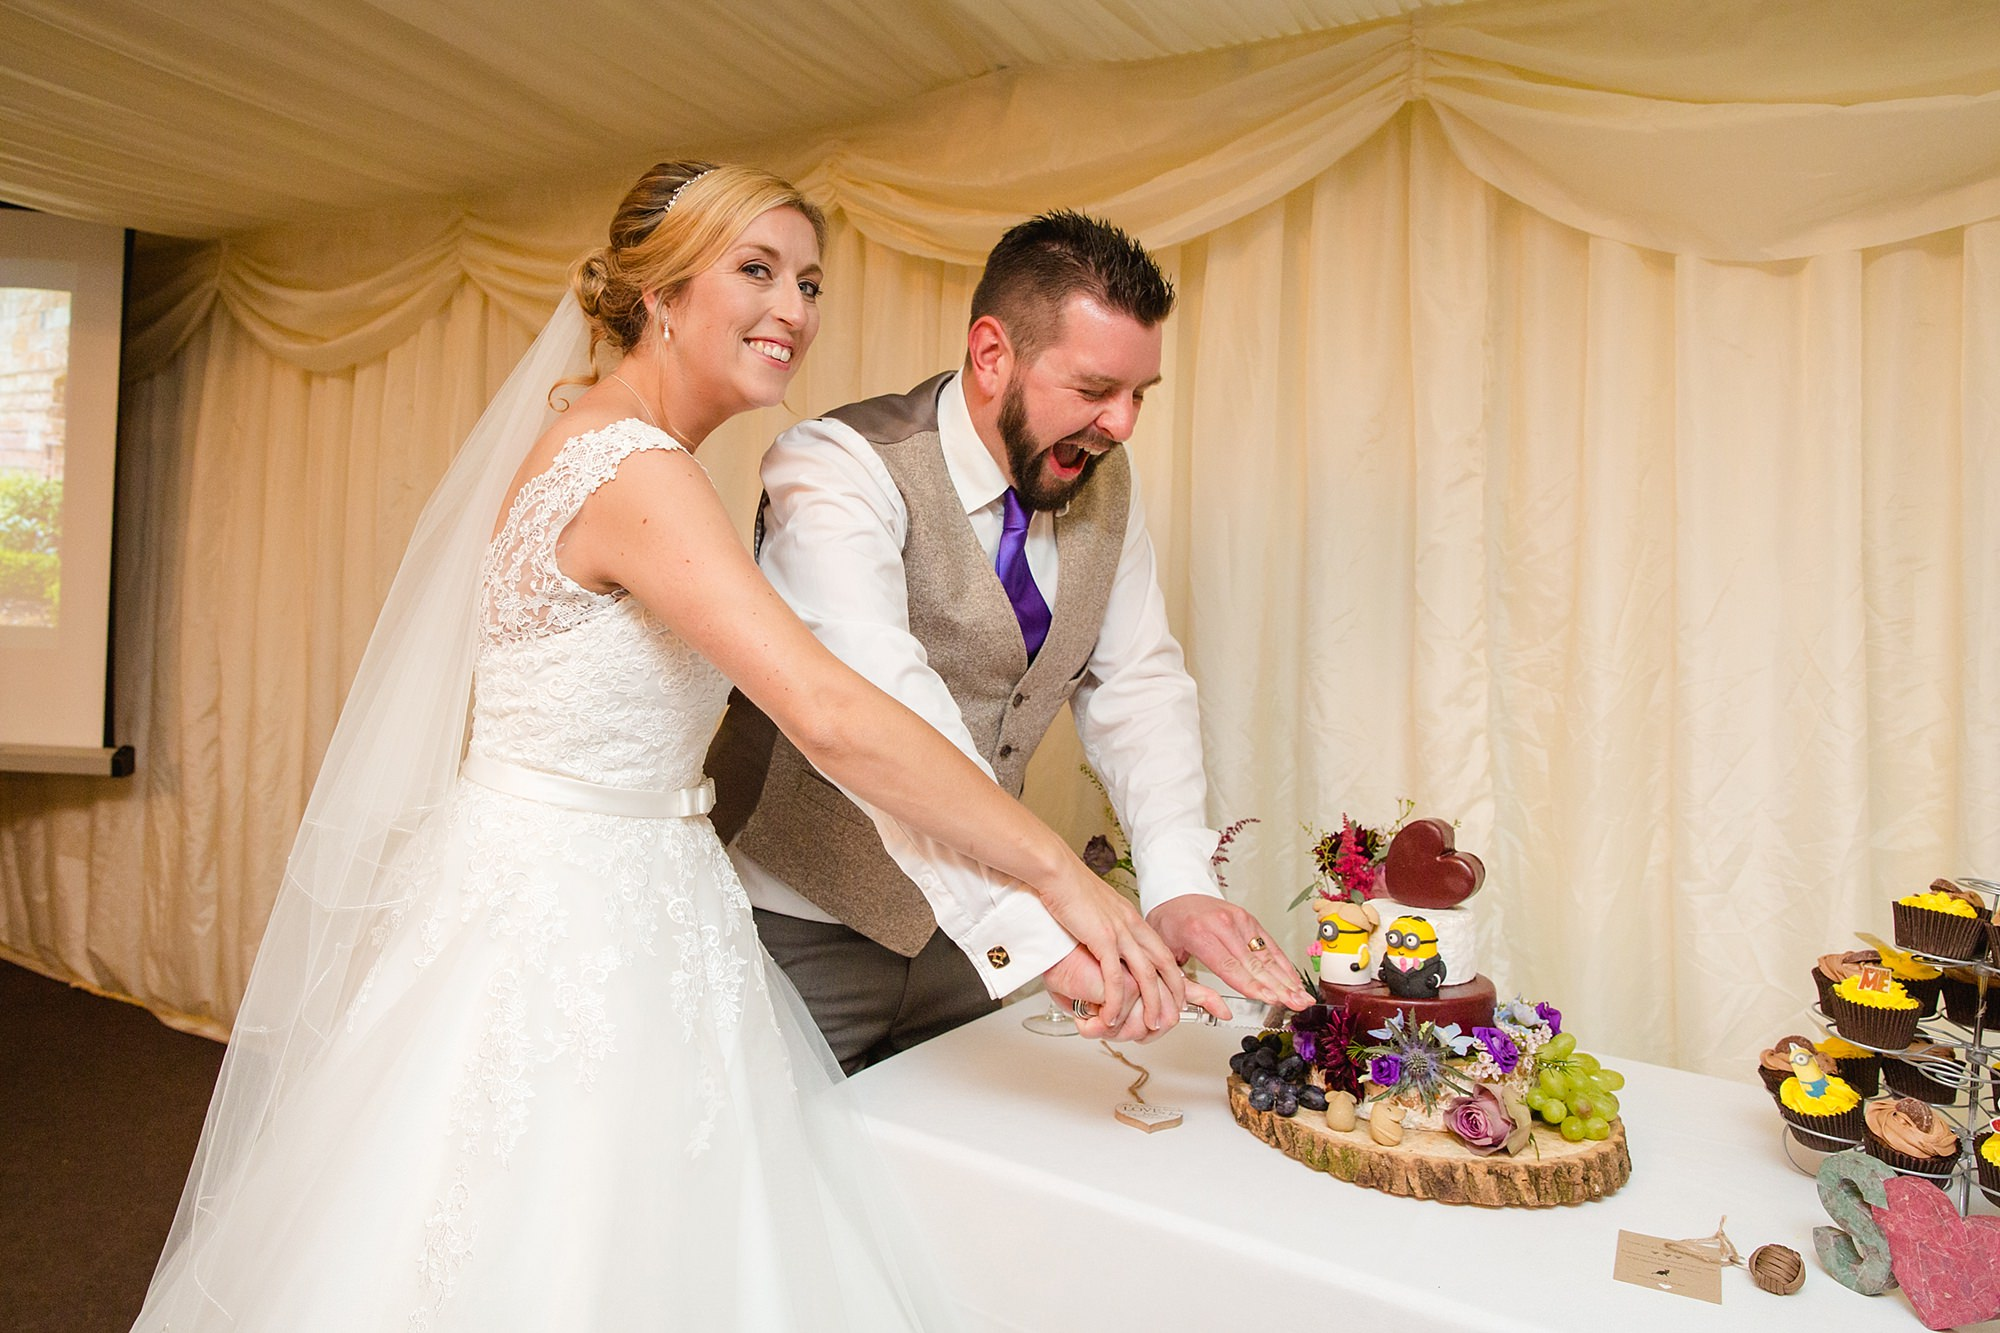 A fun wedding portrait of cake cutting